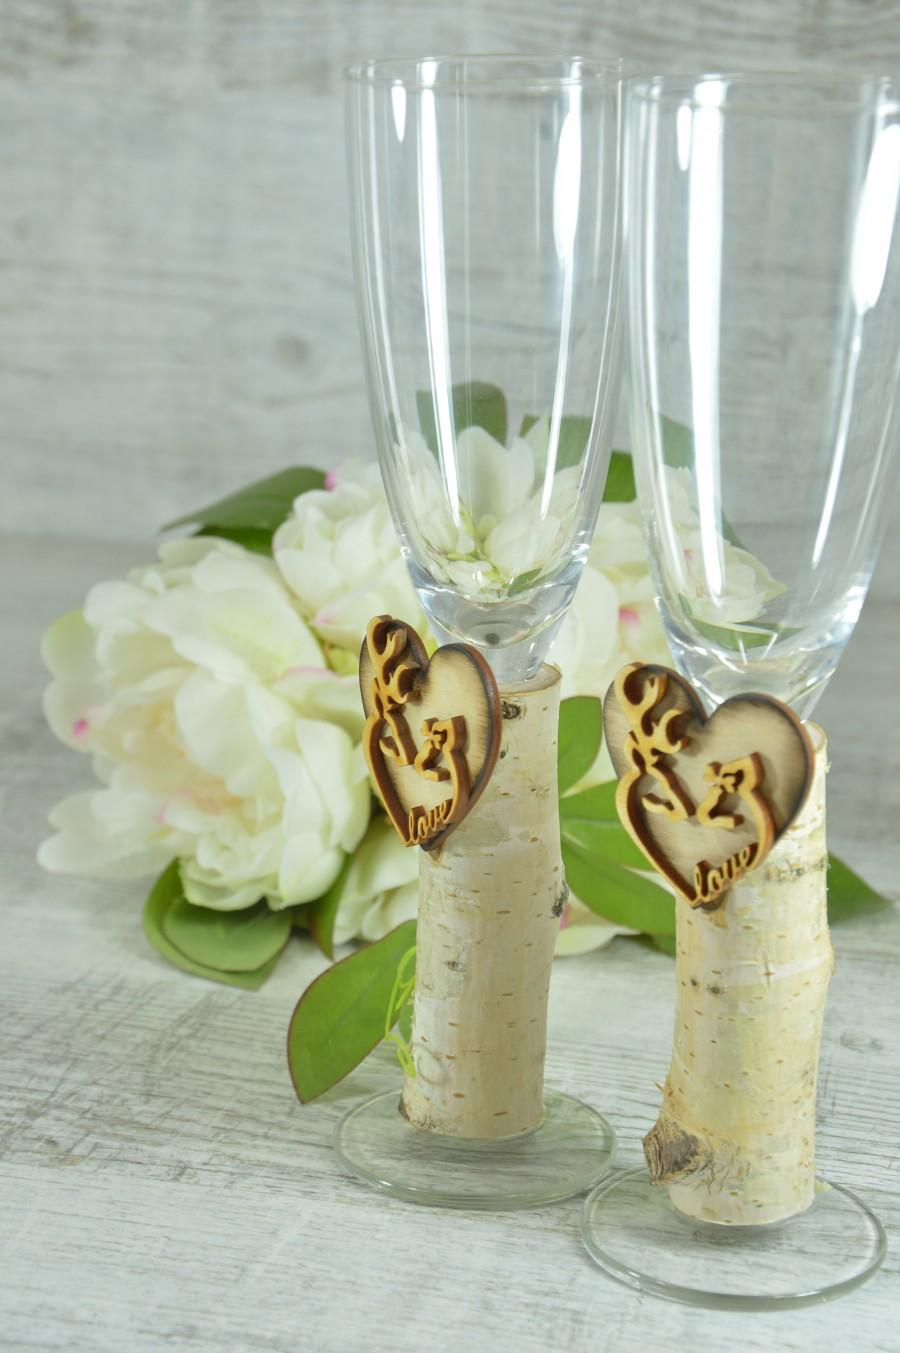 Mariage - Wedding champagne flutes, country wedding glasses, his doe her buck flutes,hunting glasses,deer champagne glasses,camo wedding,toast glasses